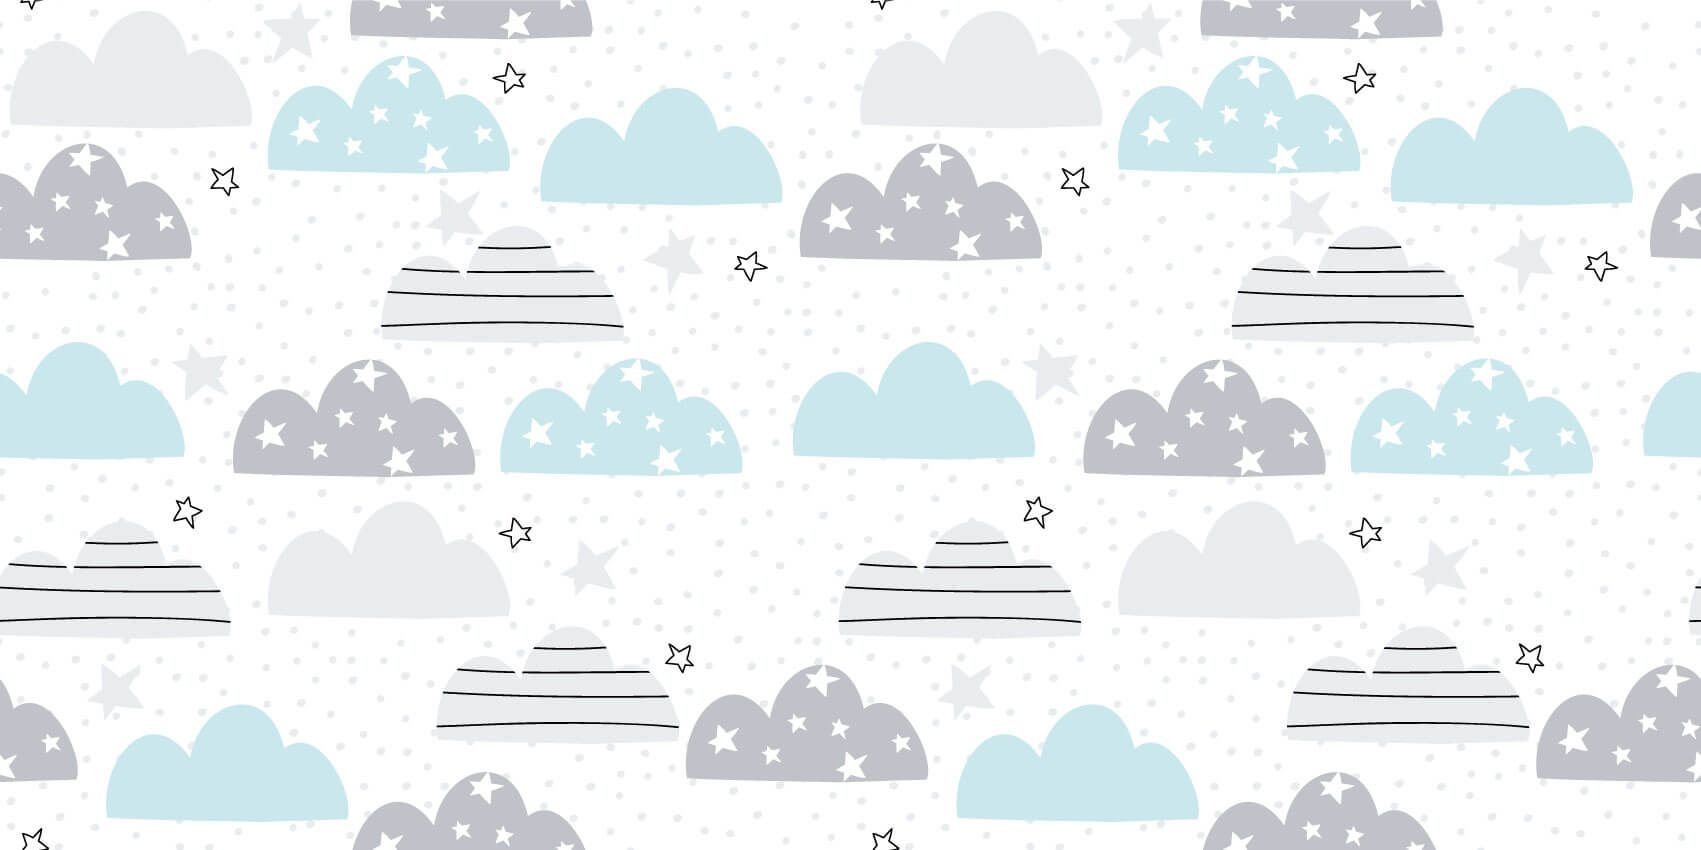 Baby wallpaper - Drawn clouds - Baby room